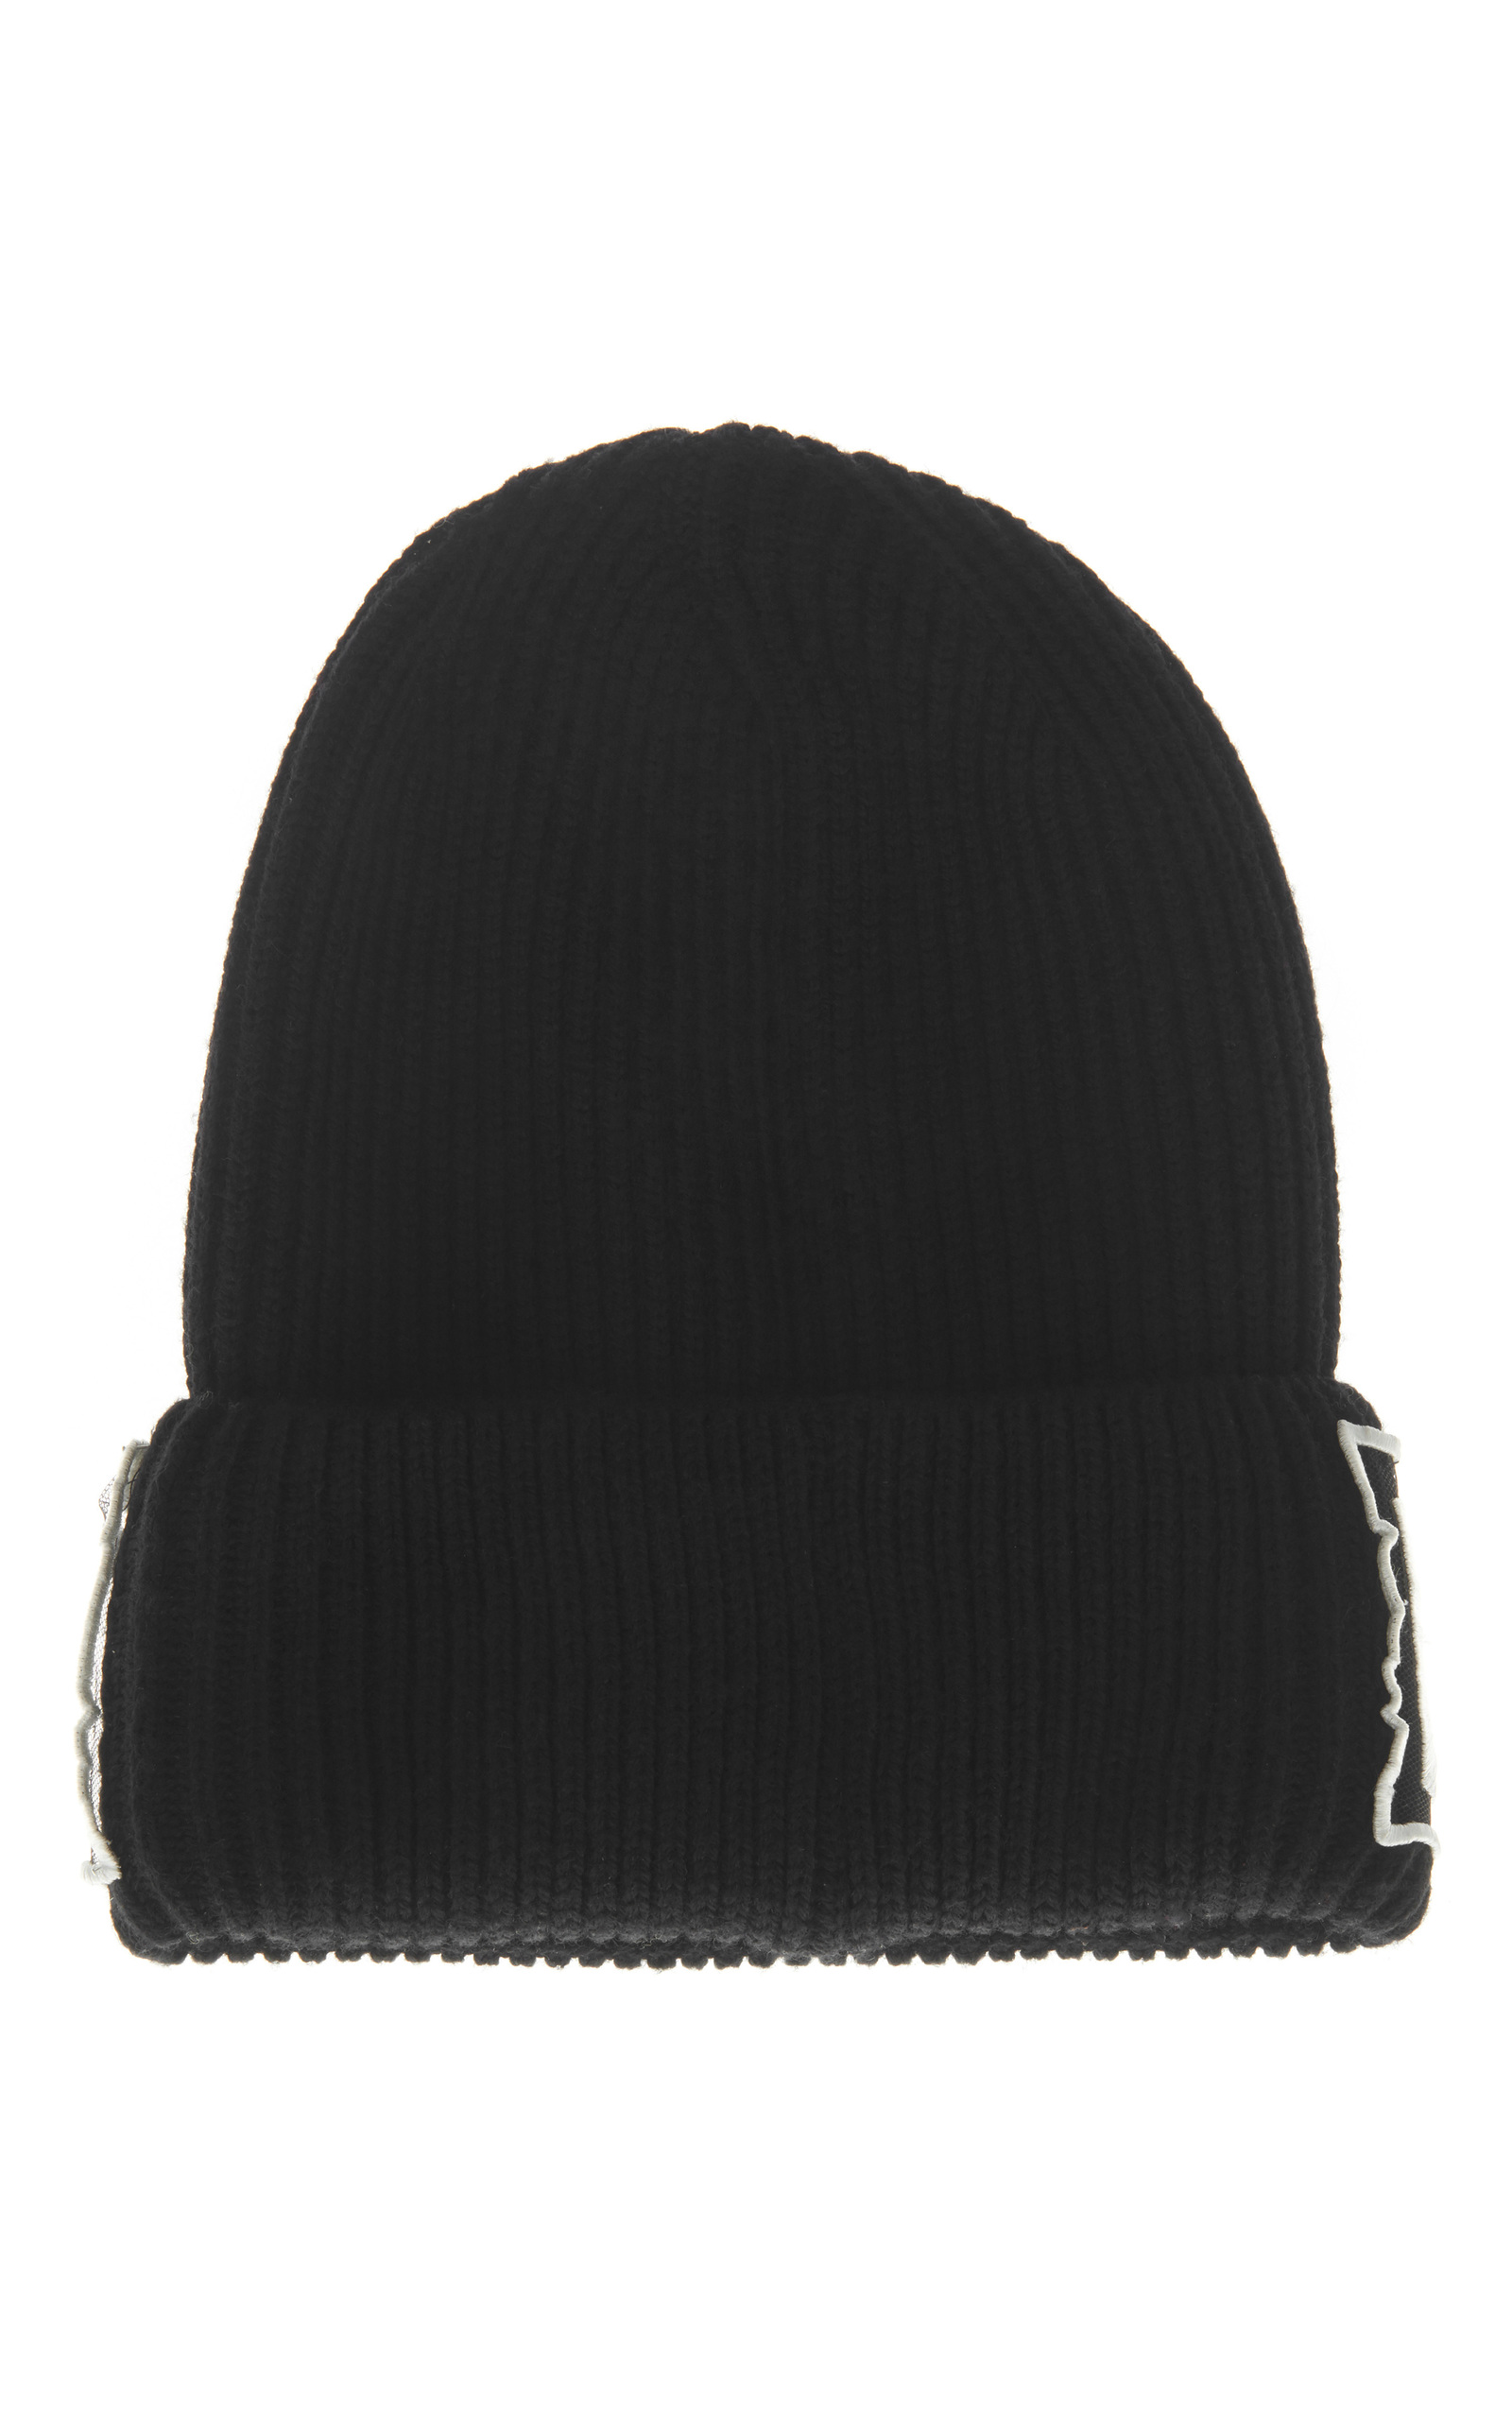 f1633c4707337 VersaceLoyalty Knit Hat. CLOSE. Loading. Loading